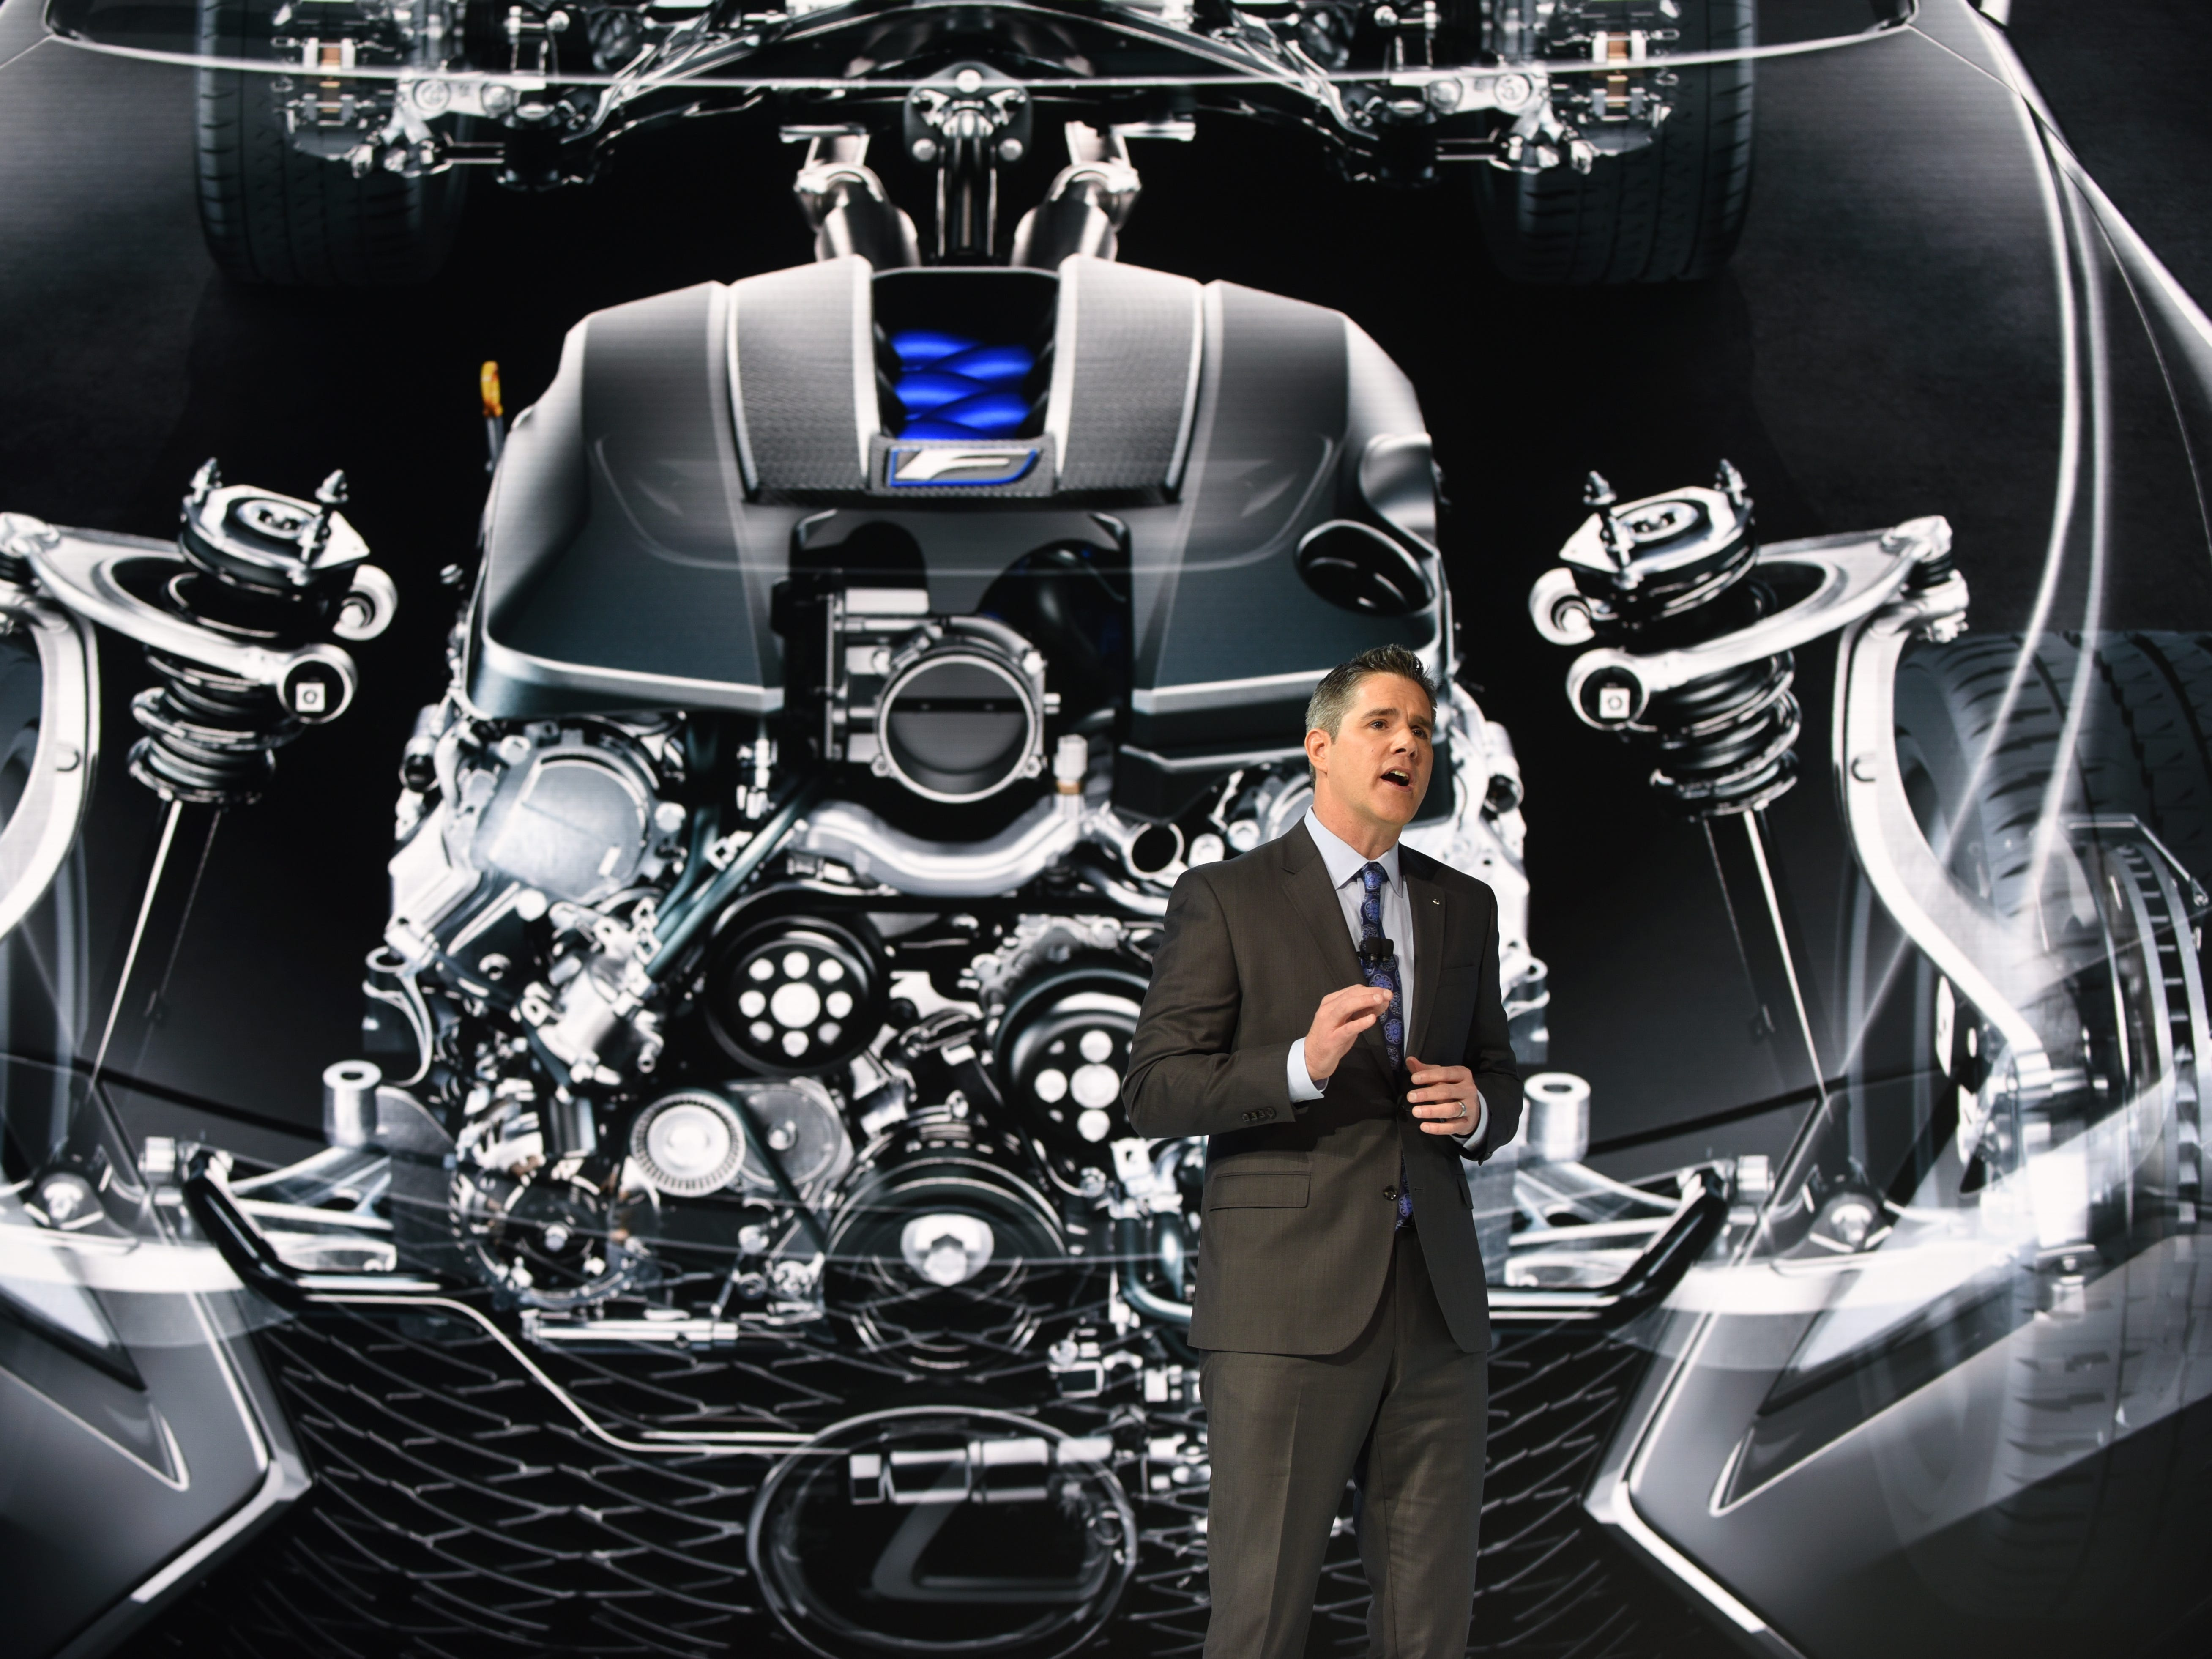 David Christ, Group President and General Manager, Lexus Division, displays the engine of the Lexus RC F Track Edition.